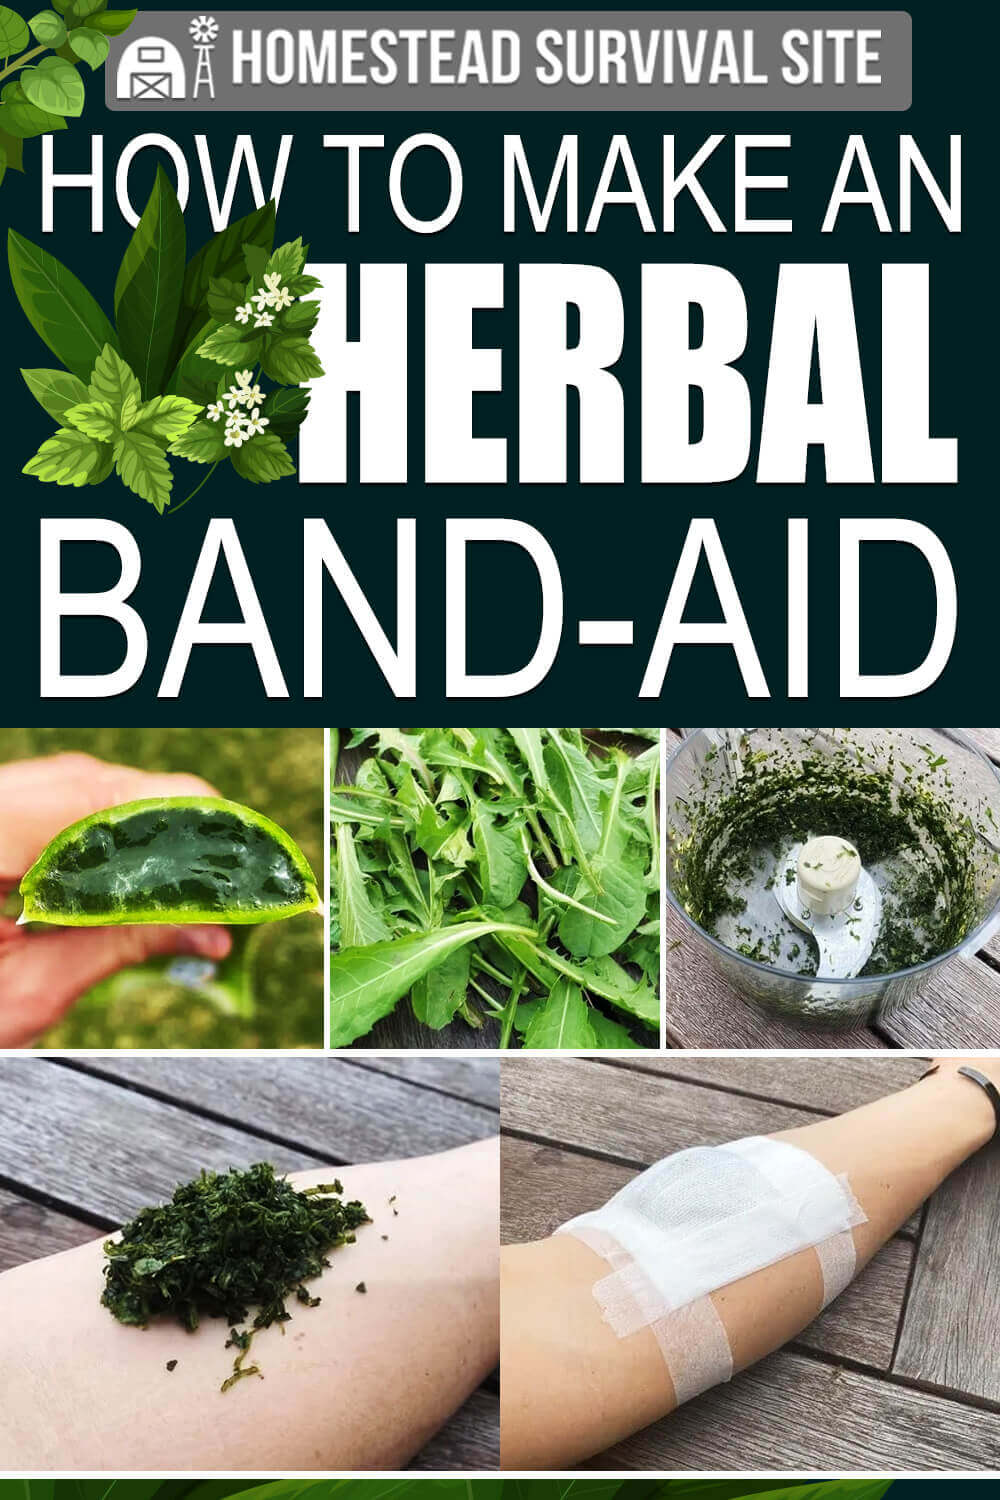 How To Make An Herbal Band-Aid